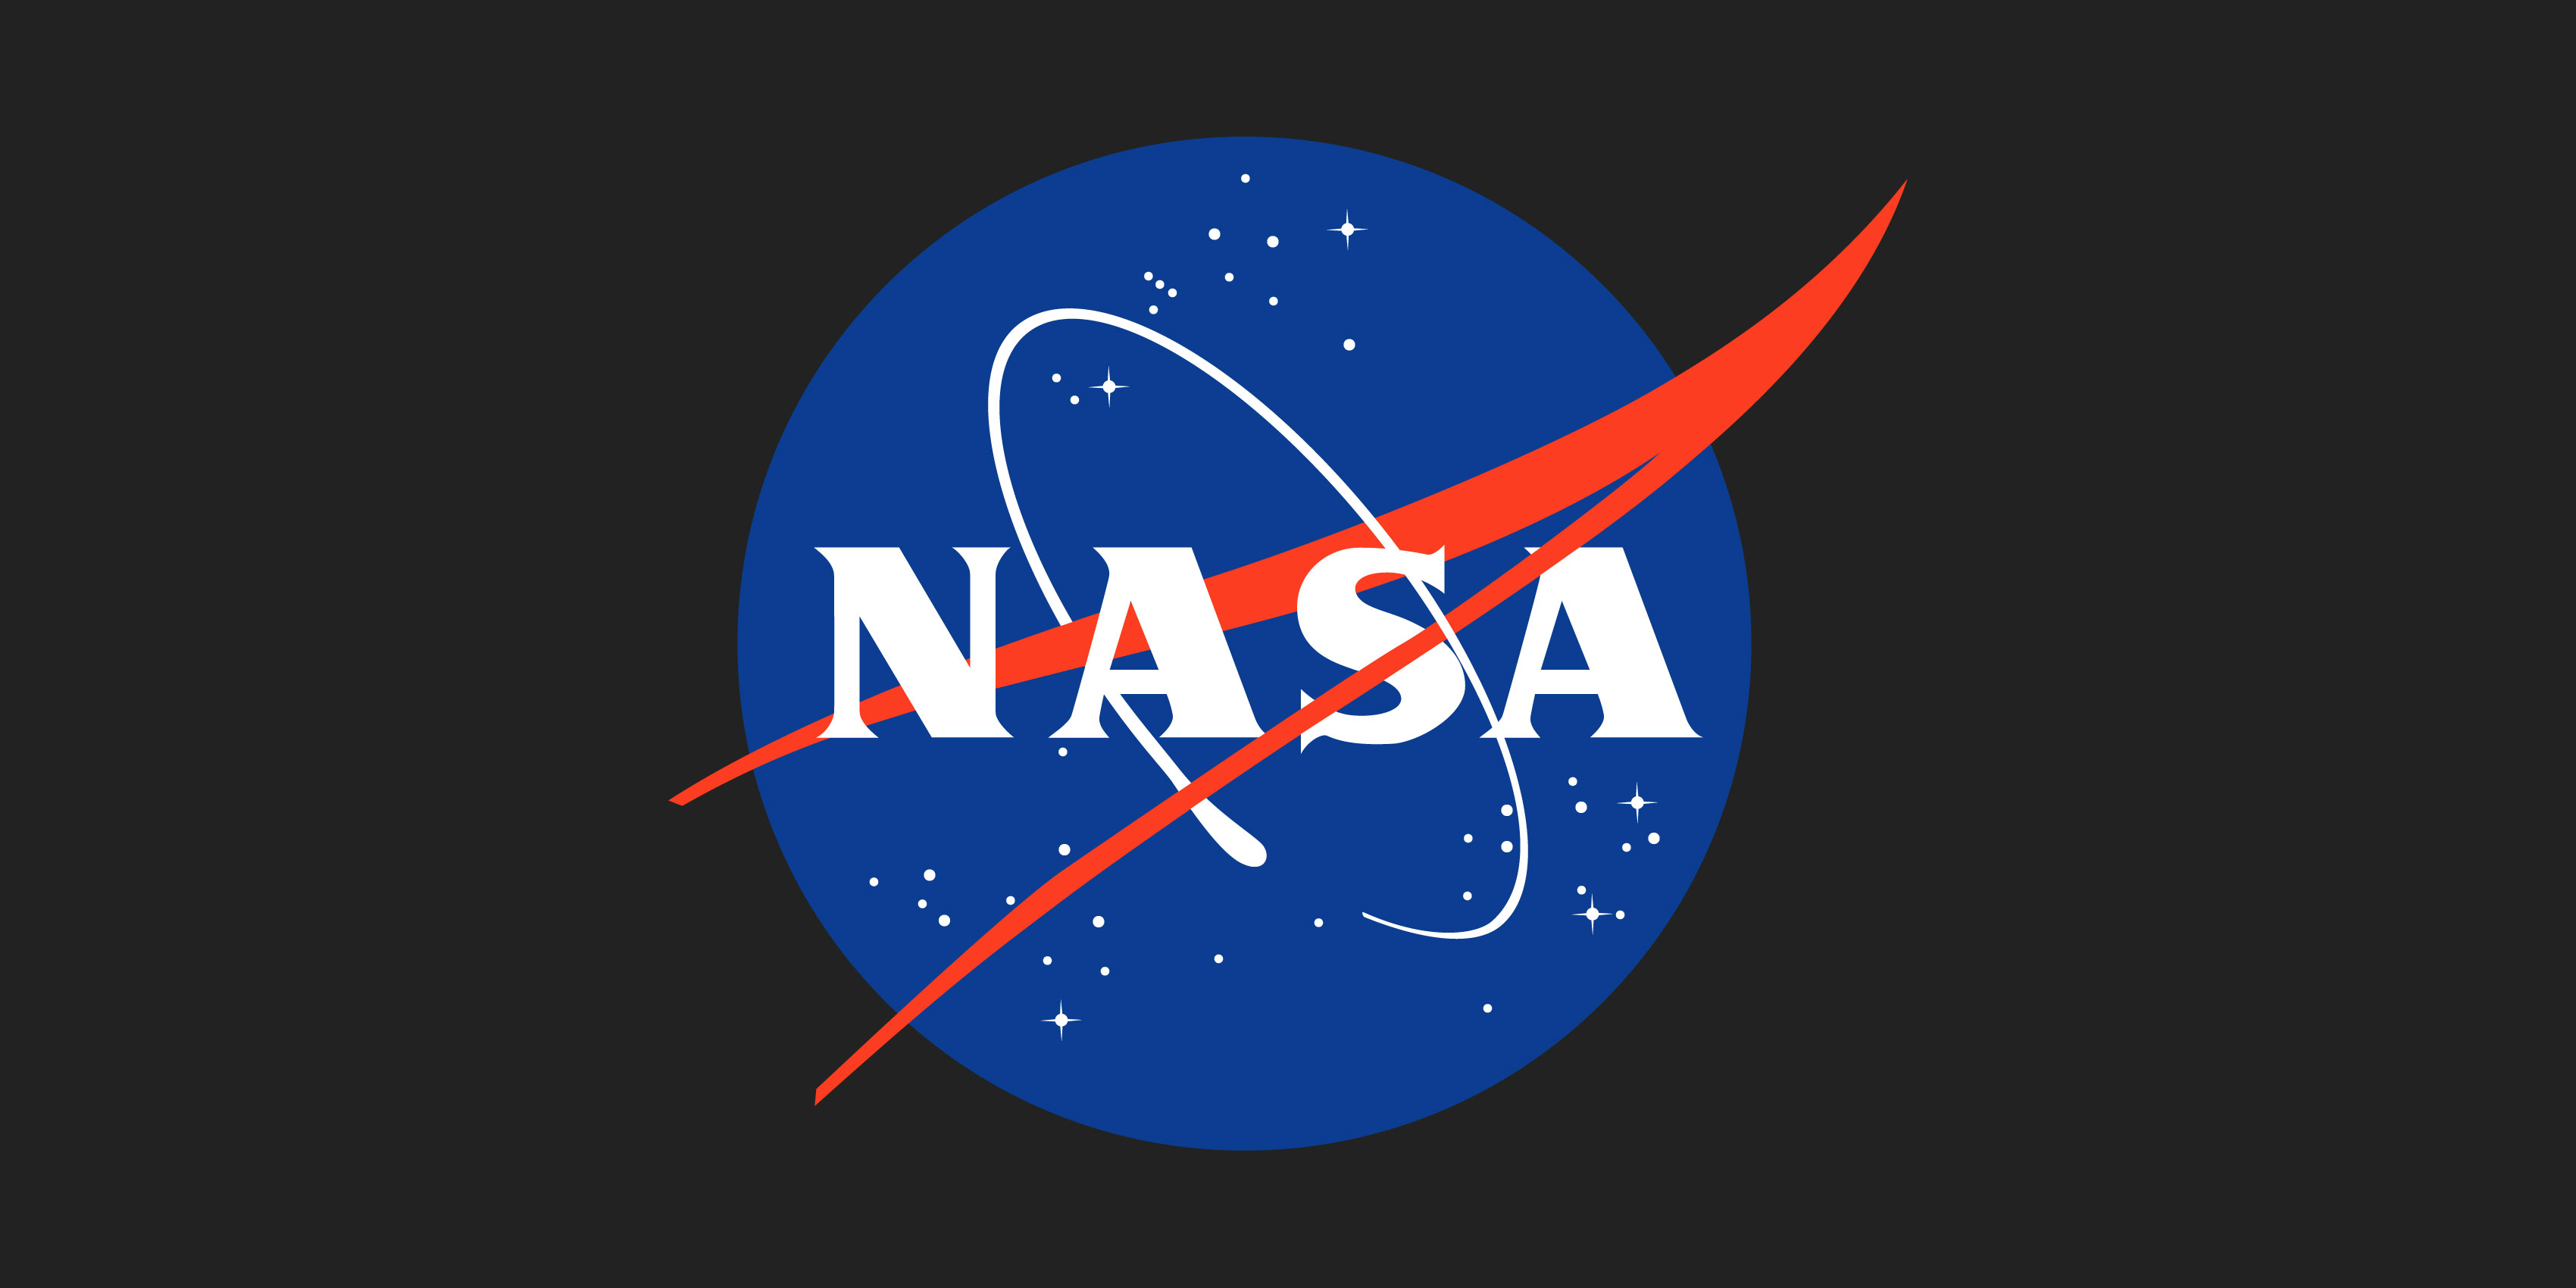 https://www.nasa.gov/sites/default/files/thumbnails/image/nasa-logo-web-rgb_0.jpg